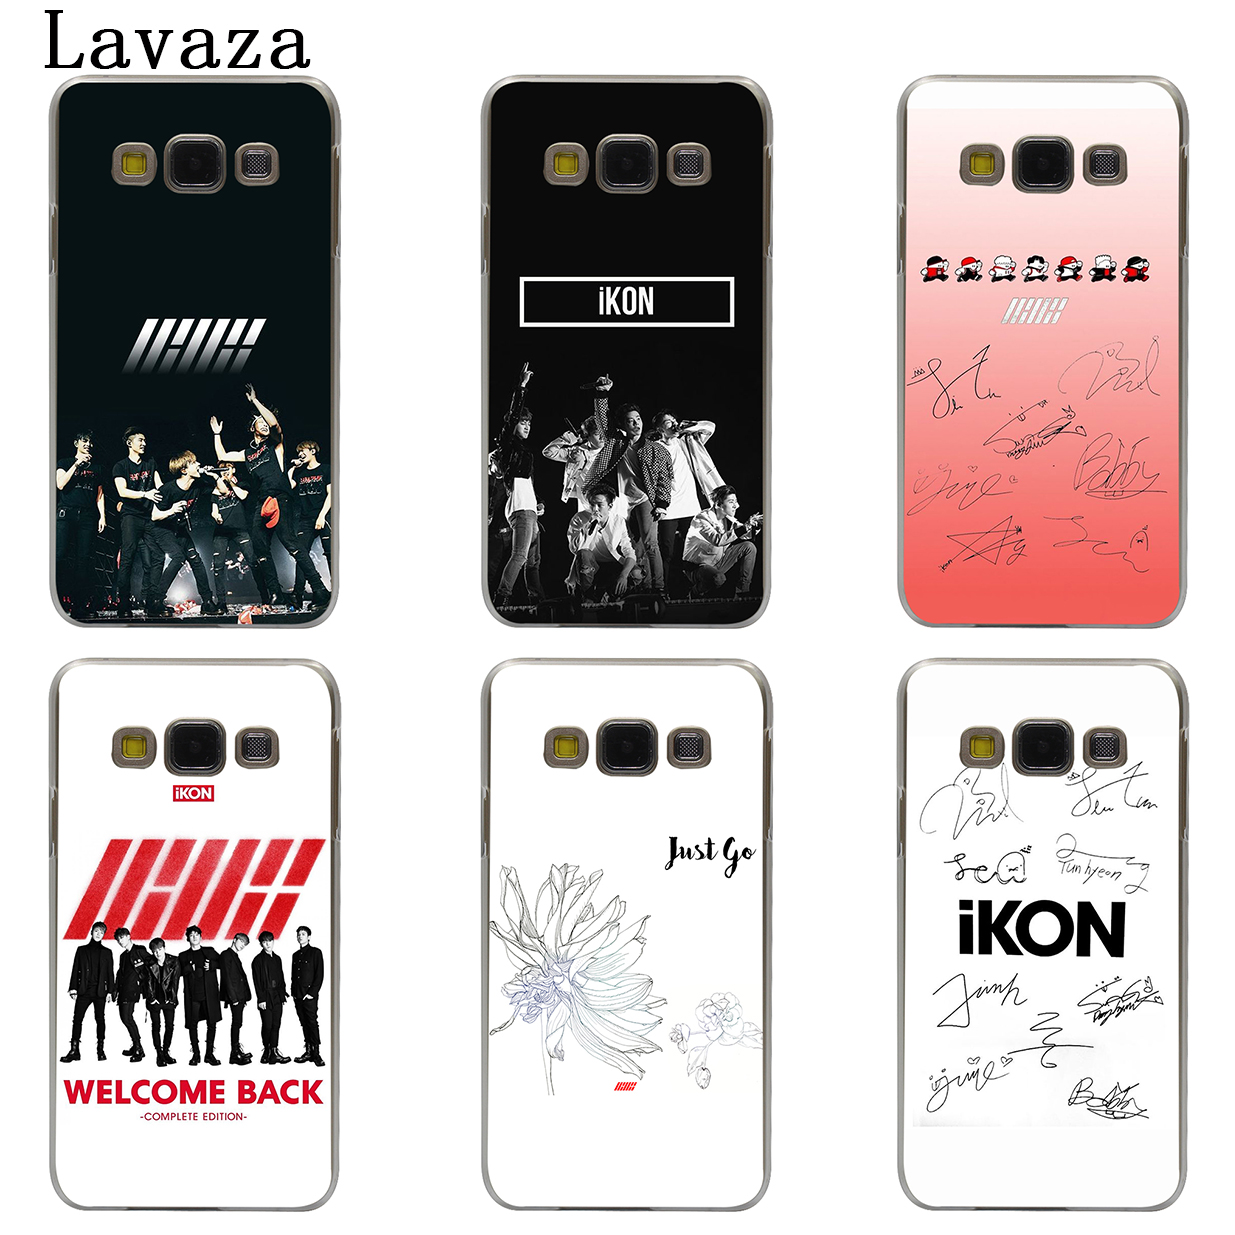 US $1 61 40% OFF|Lavaza IKON Kpop Hard Phone Case Shell for Samsung Galaxy  A3 A5 2017 A9 A8 A6 Plus 2018 Note 8 9 Cover-in Half-wrapped Cases from